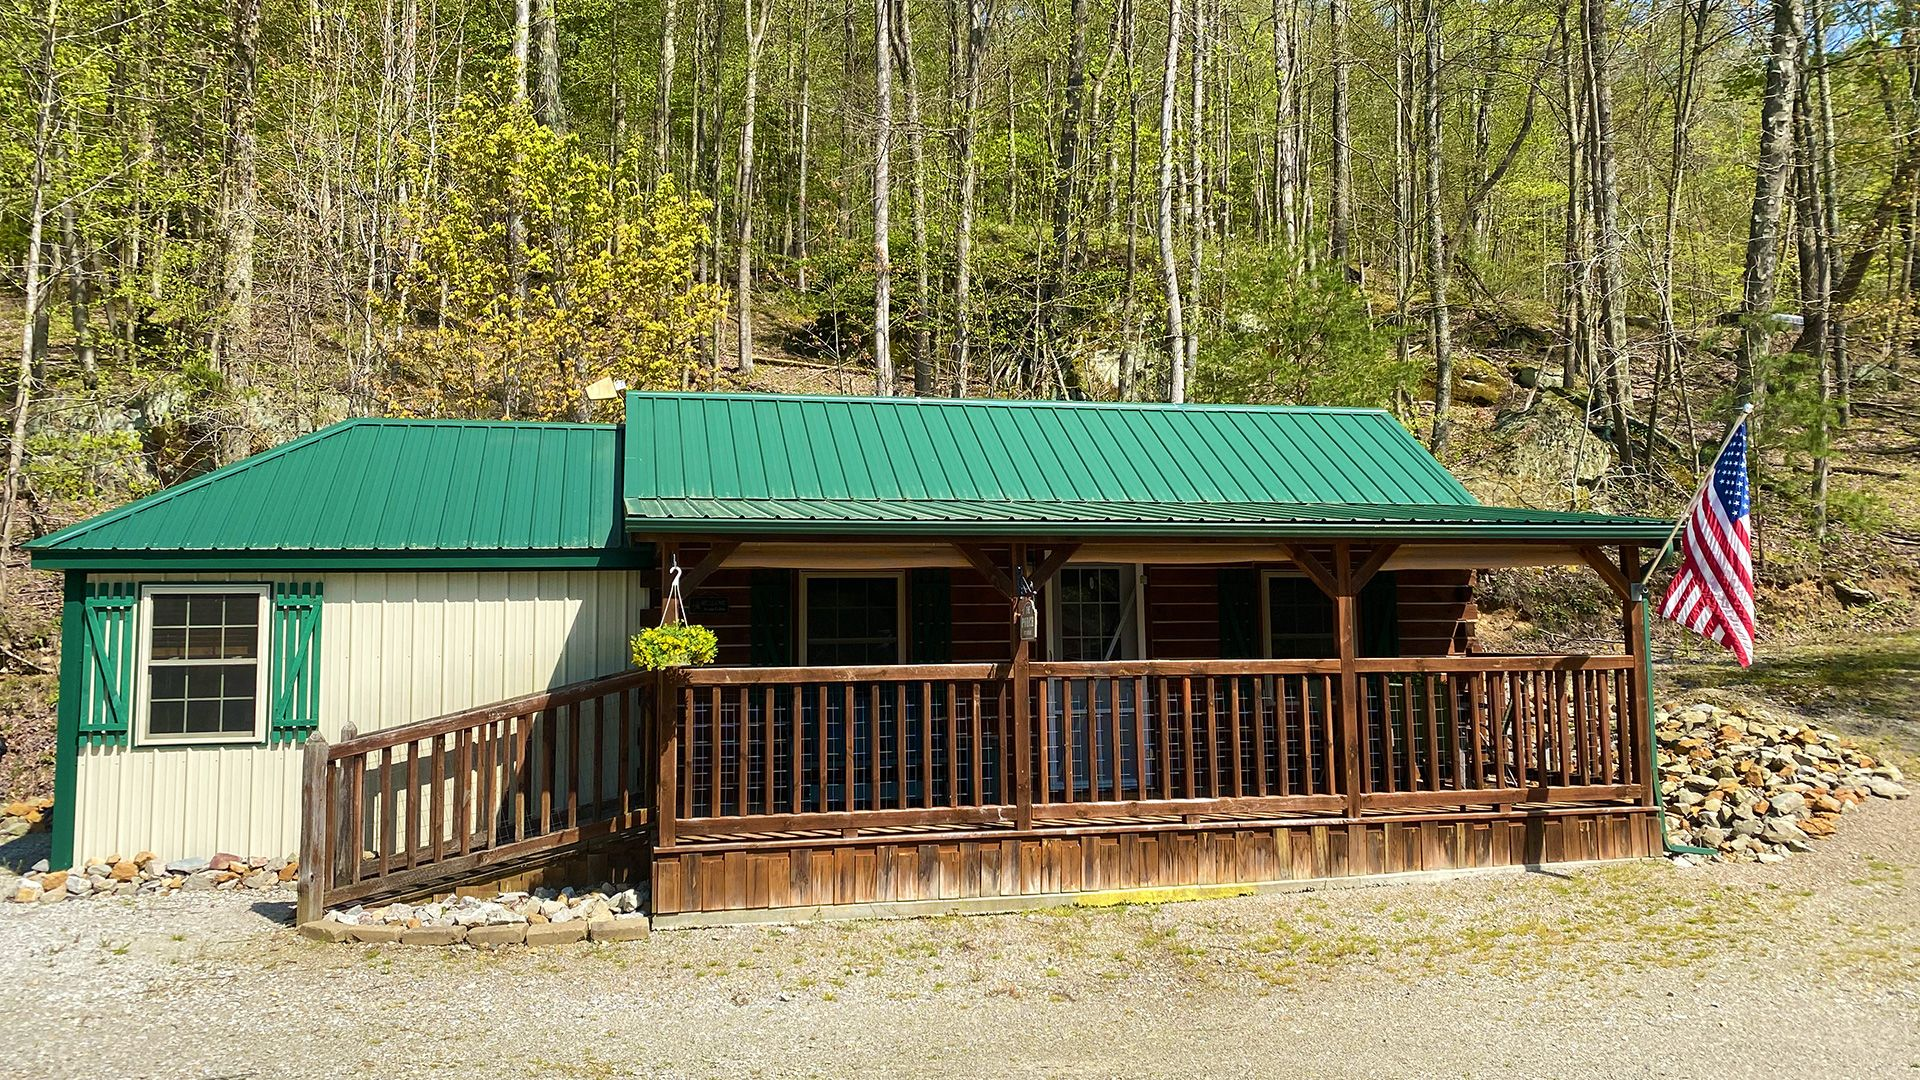 Turkey Ridge Lodges and Cabins